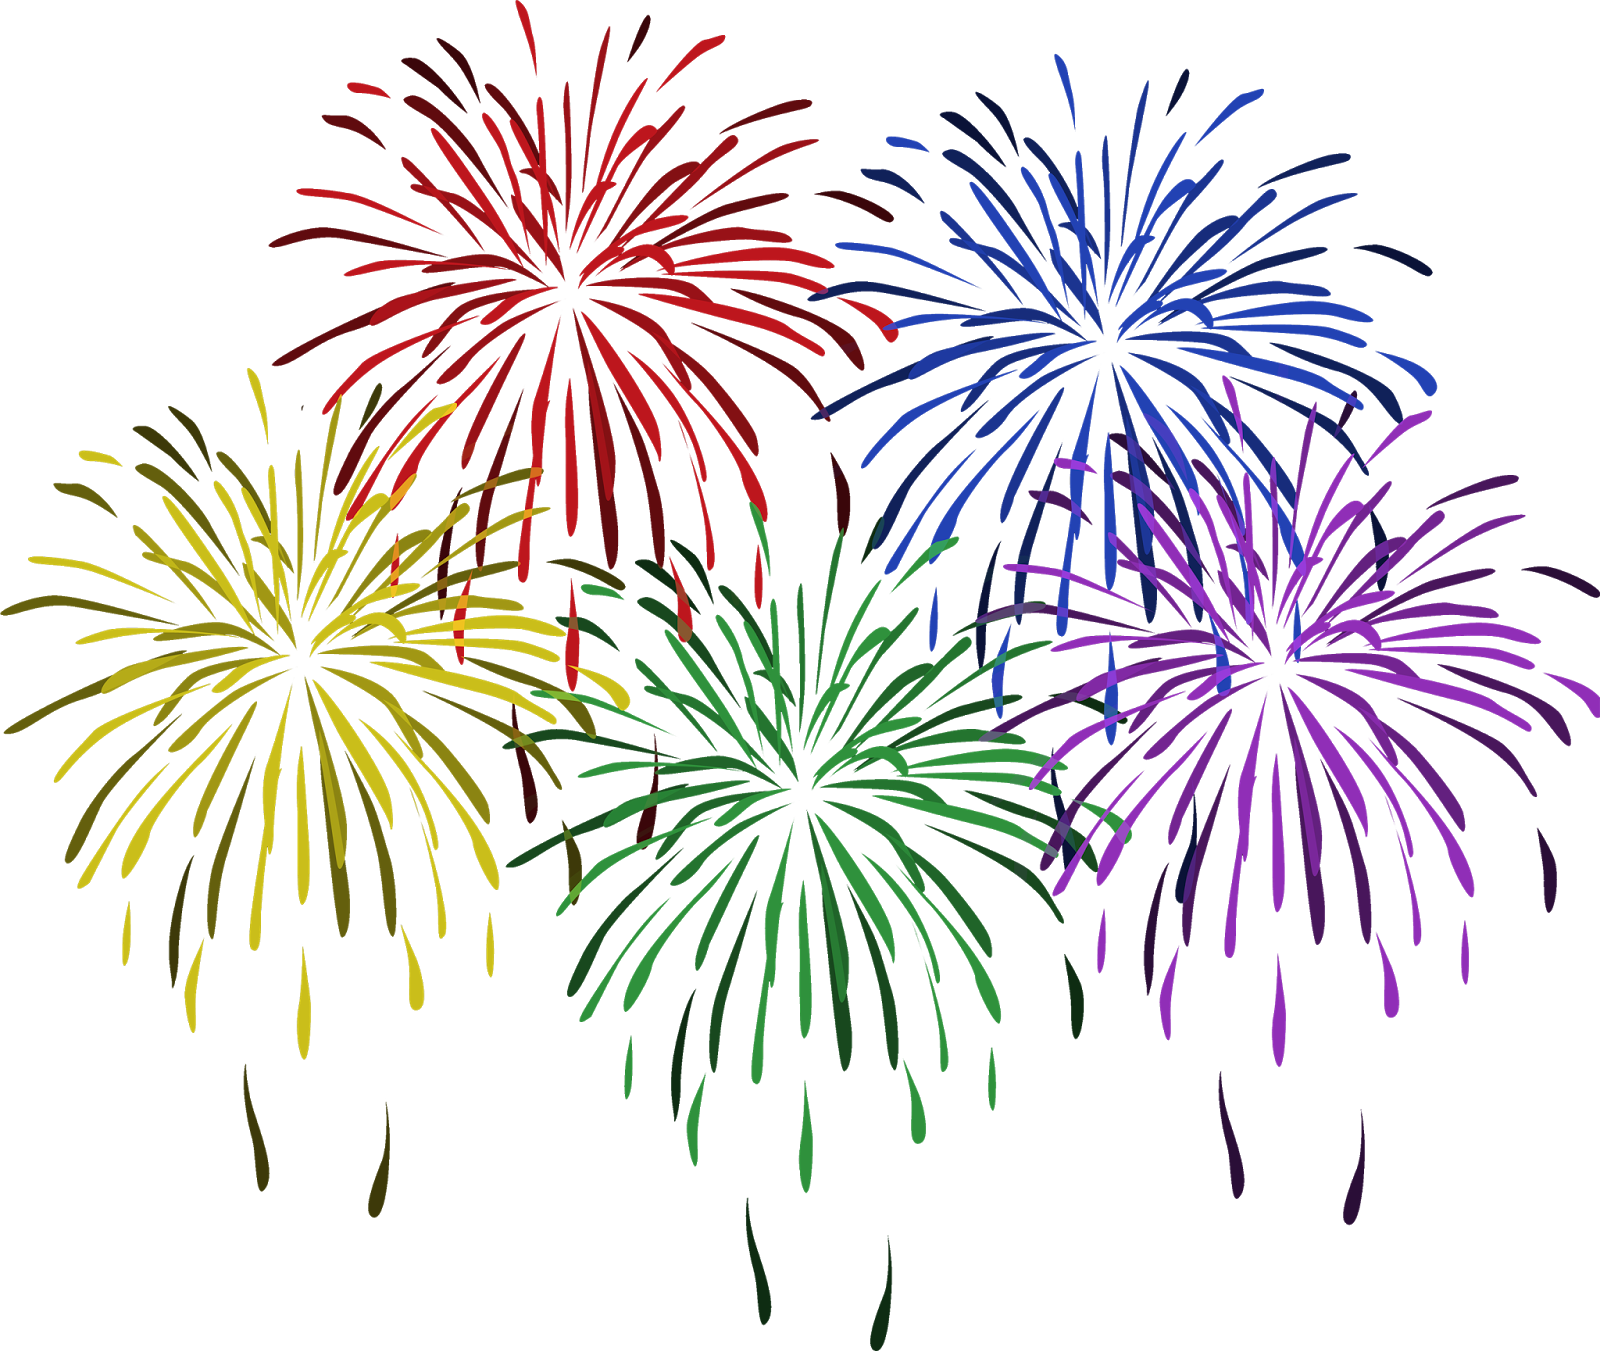 Free Firework Clip Art, Download Free Clip Art, Free Clip.